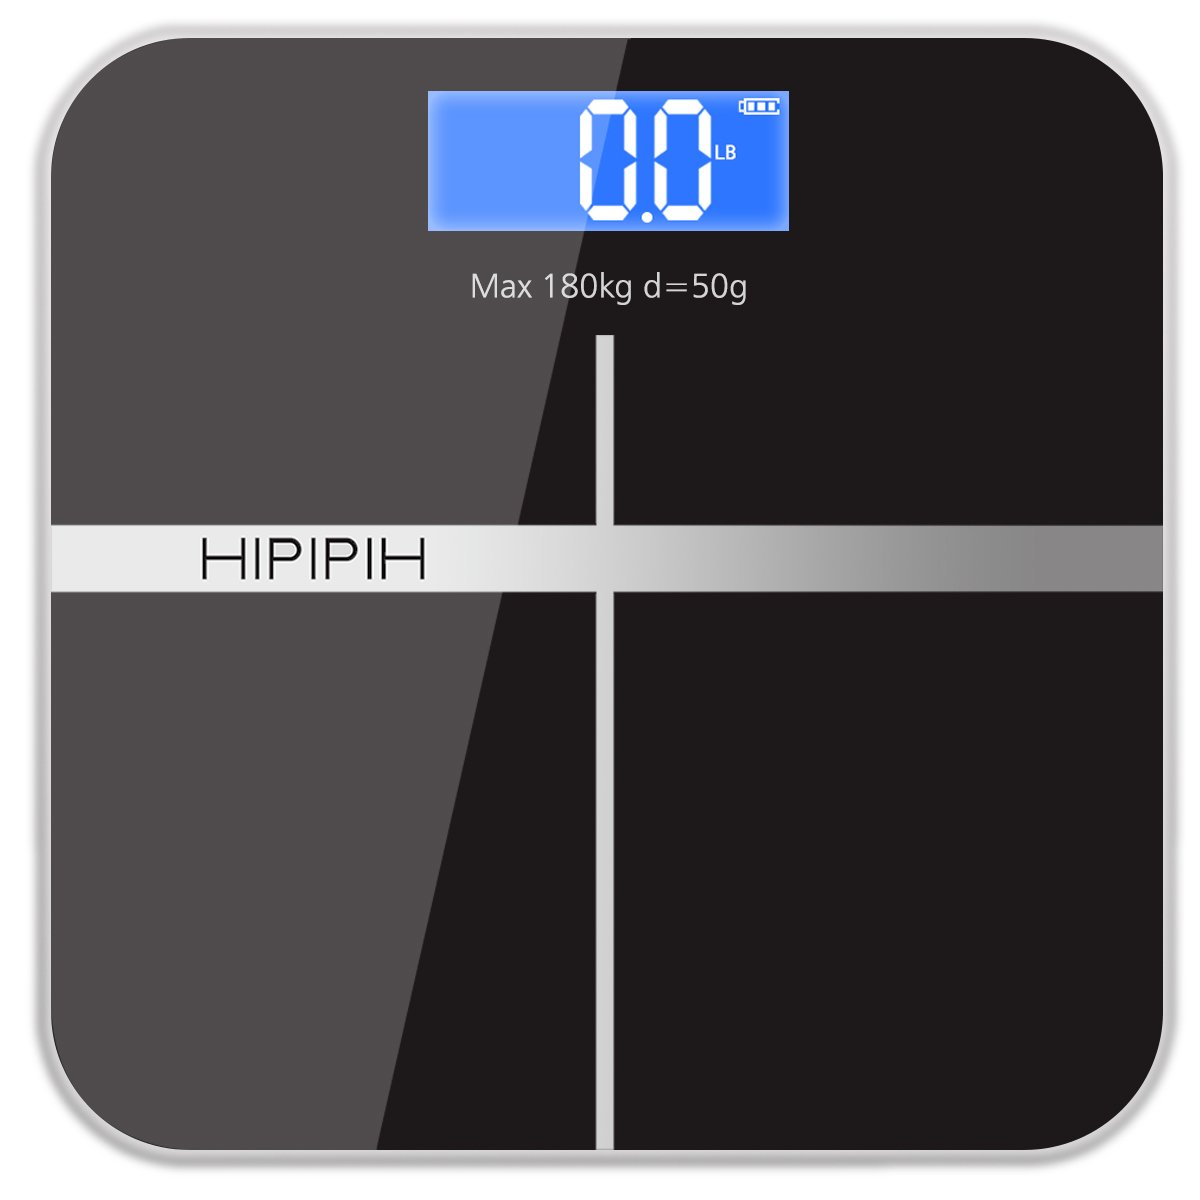 Hippih Smart Weigh Body Digital Precision Scale with Step-On Technology Easy-to-Read Measures Weight 400lb/180kg AAA Glass Square 006 (Black)